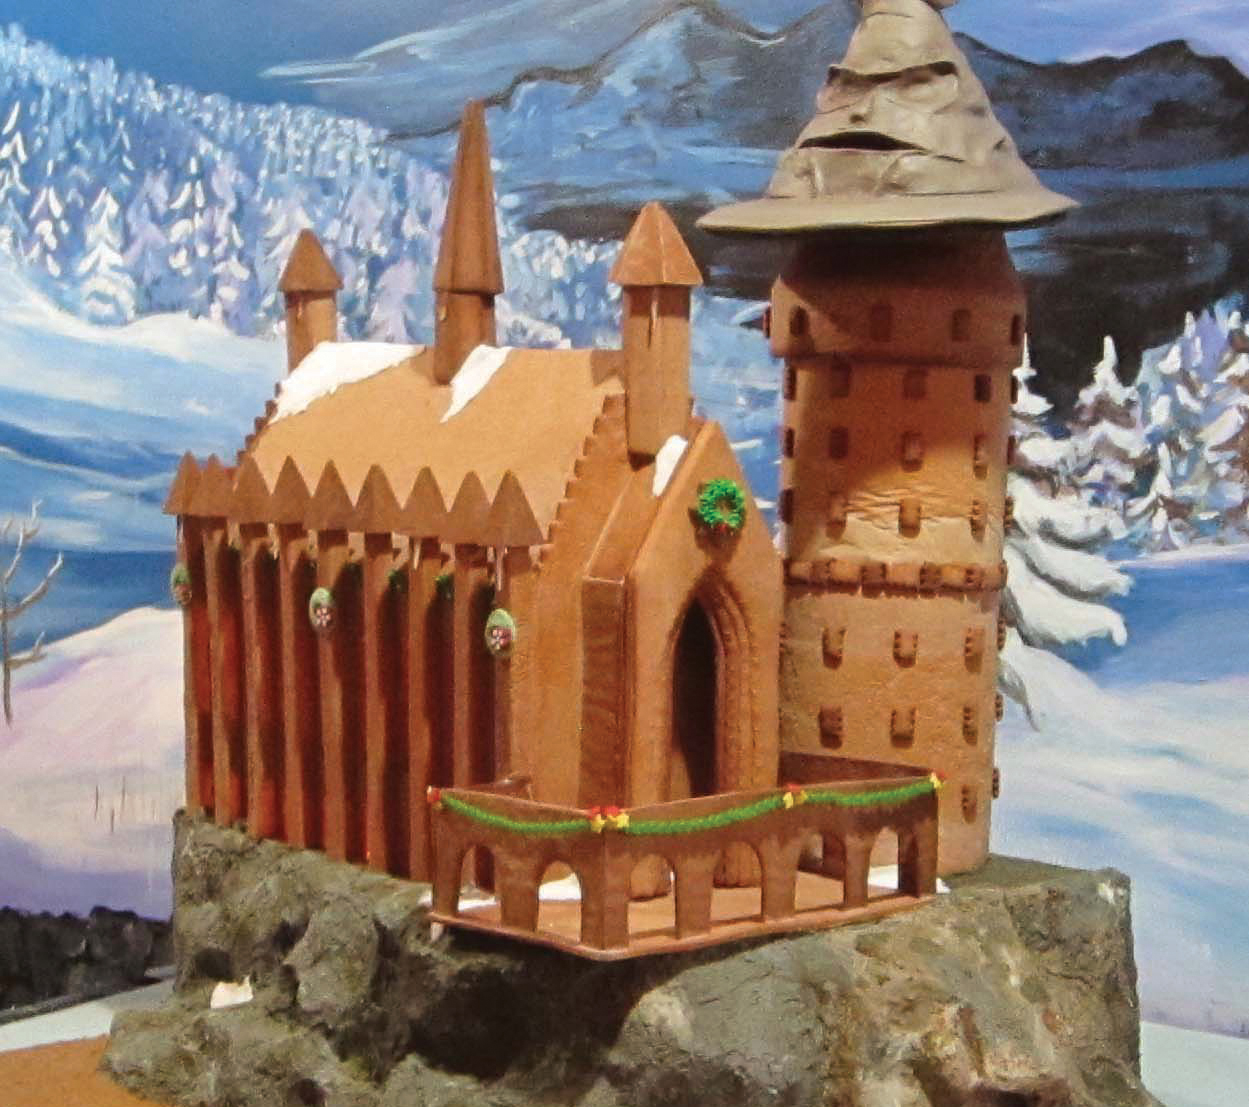 Springfield Museums To Showcase Gingerbread Exhibit At Next Culture & Cocktails